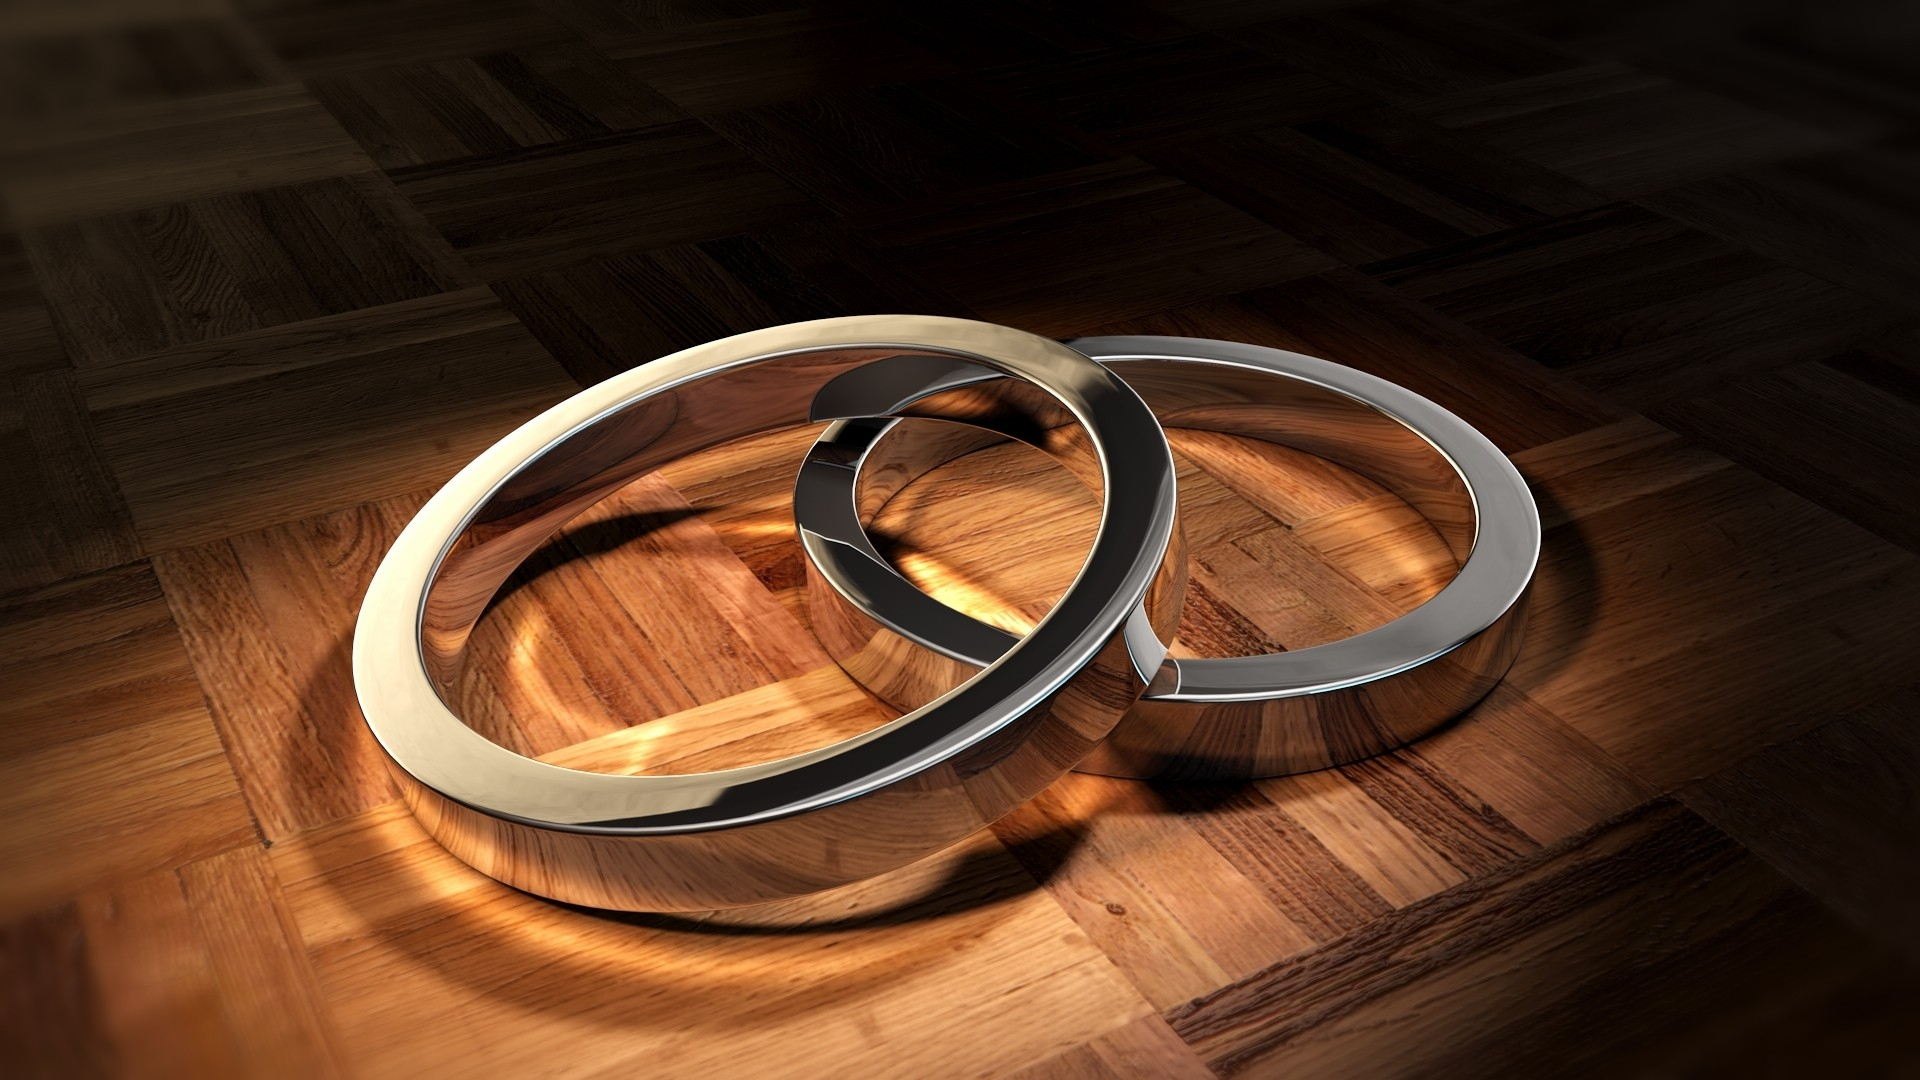 Download Wallpaper 1920x1080 Rings Form Couple Metal Surface